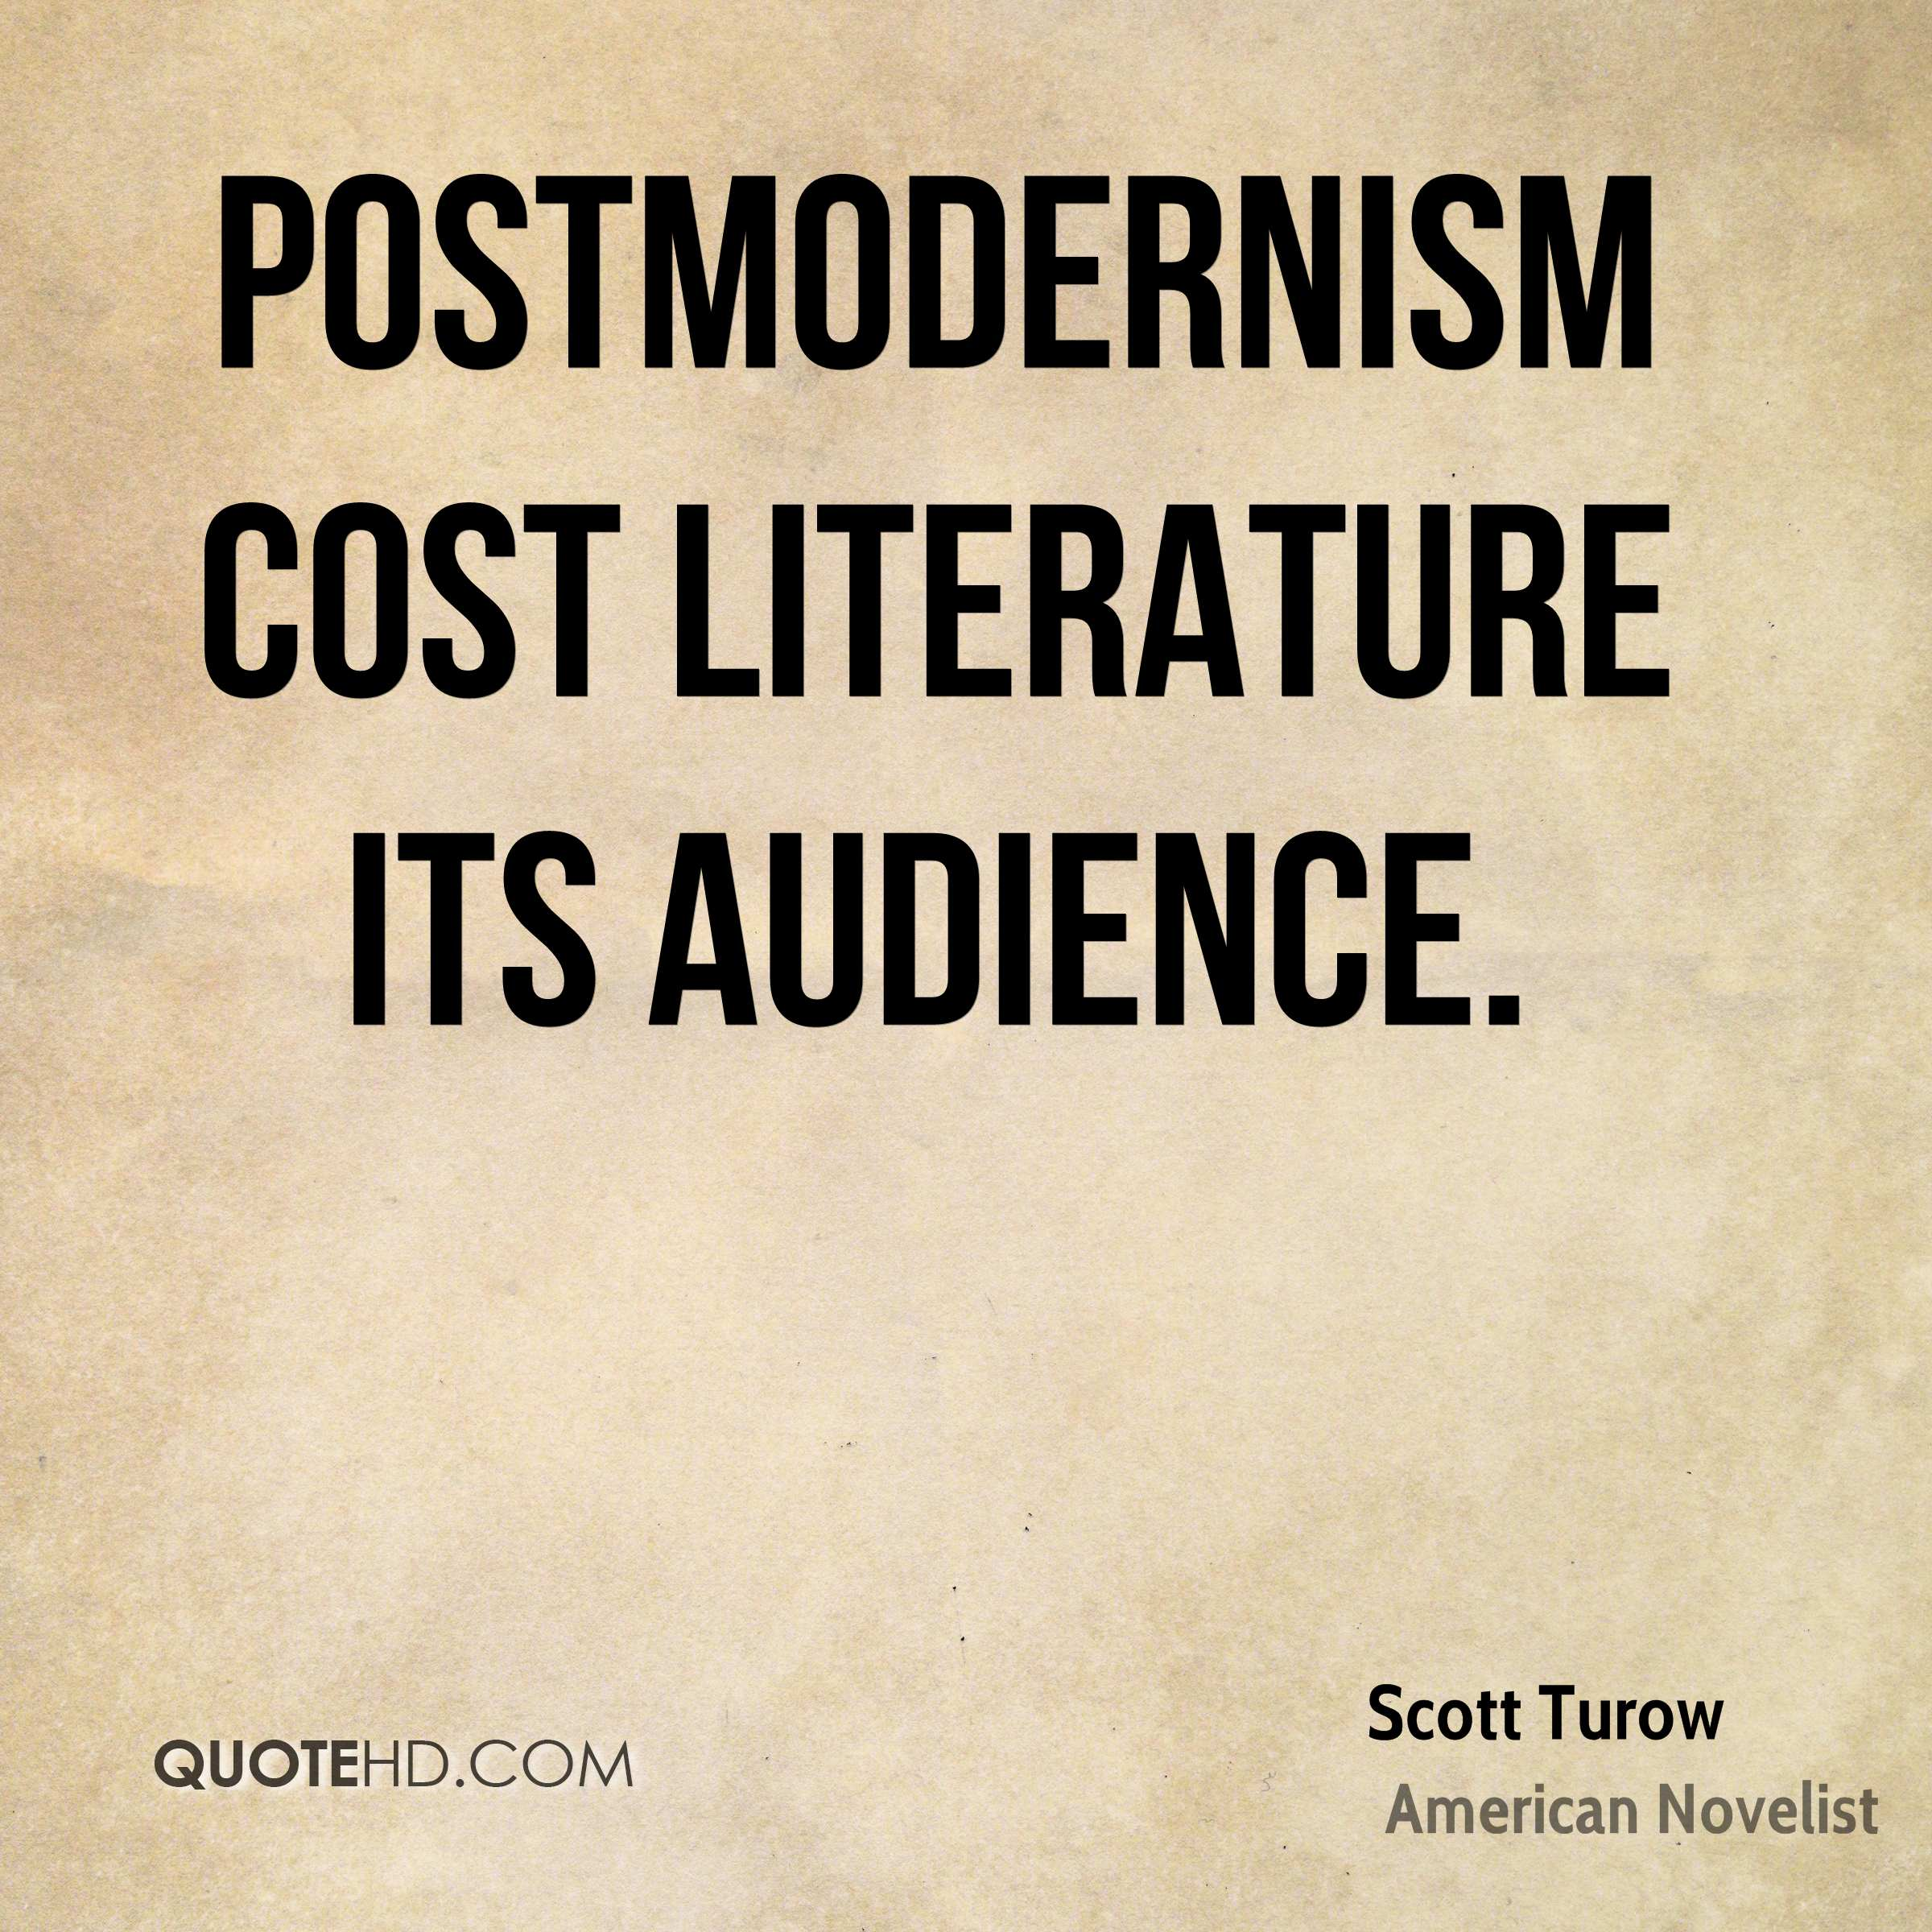 Postmodernism cost literature its audience.